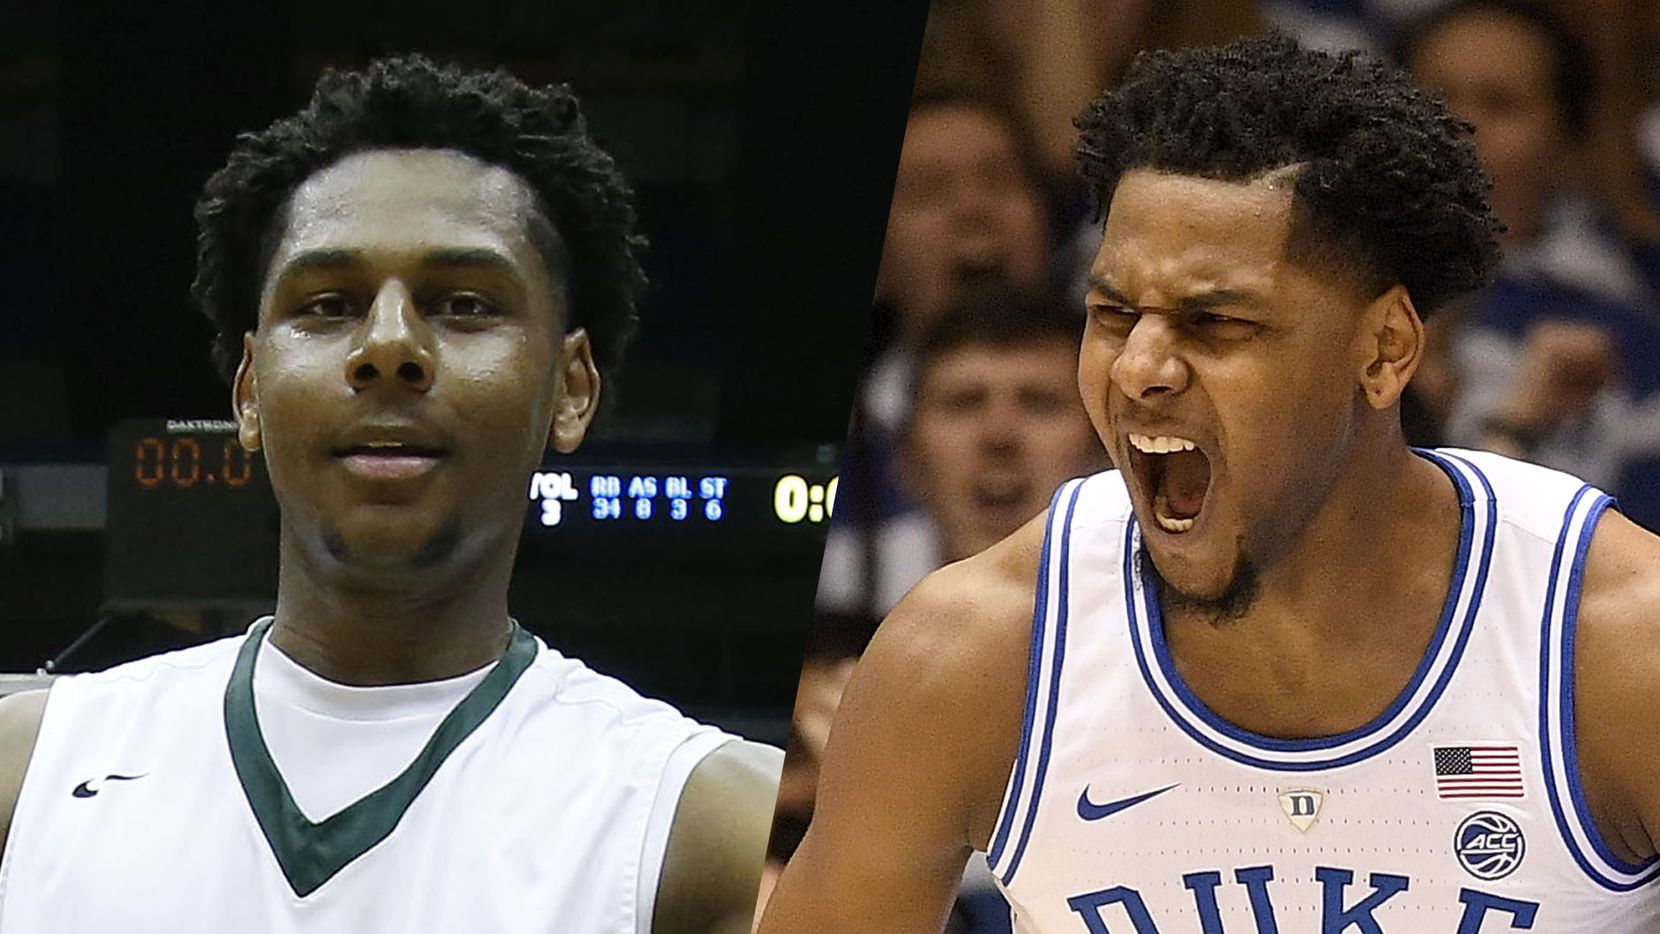 Marques Bolden with DeSoto in 2016 (left) and Duke in 2019.